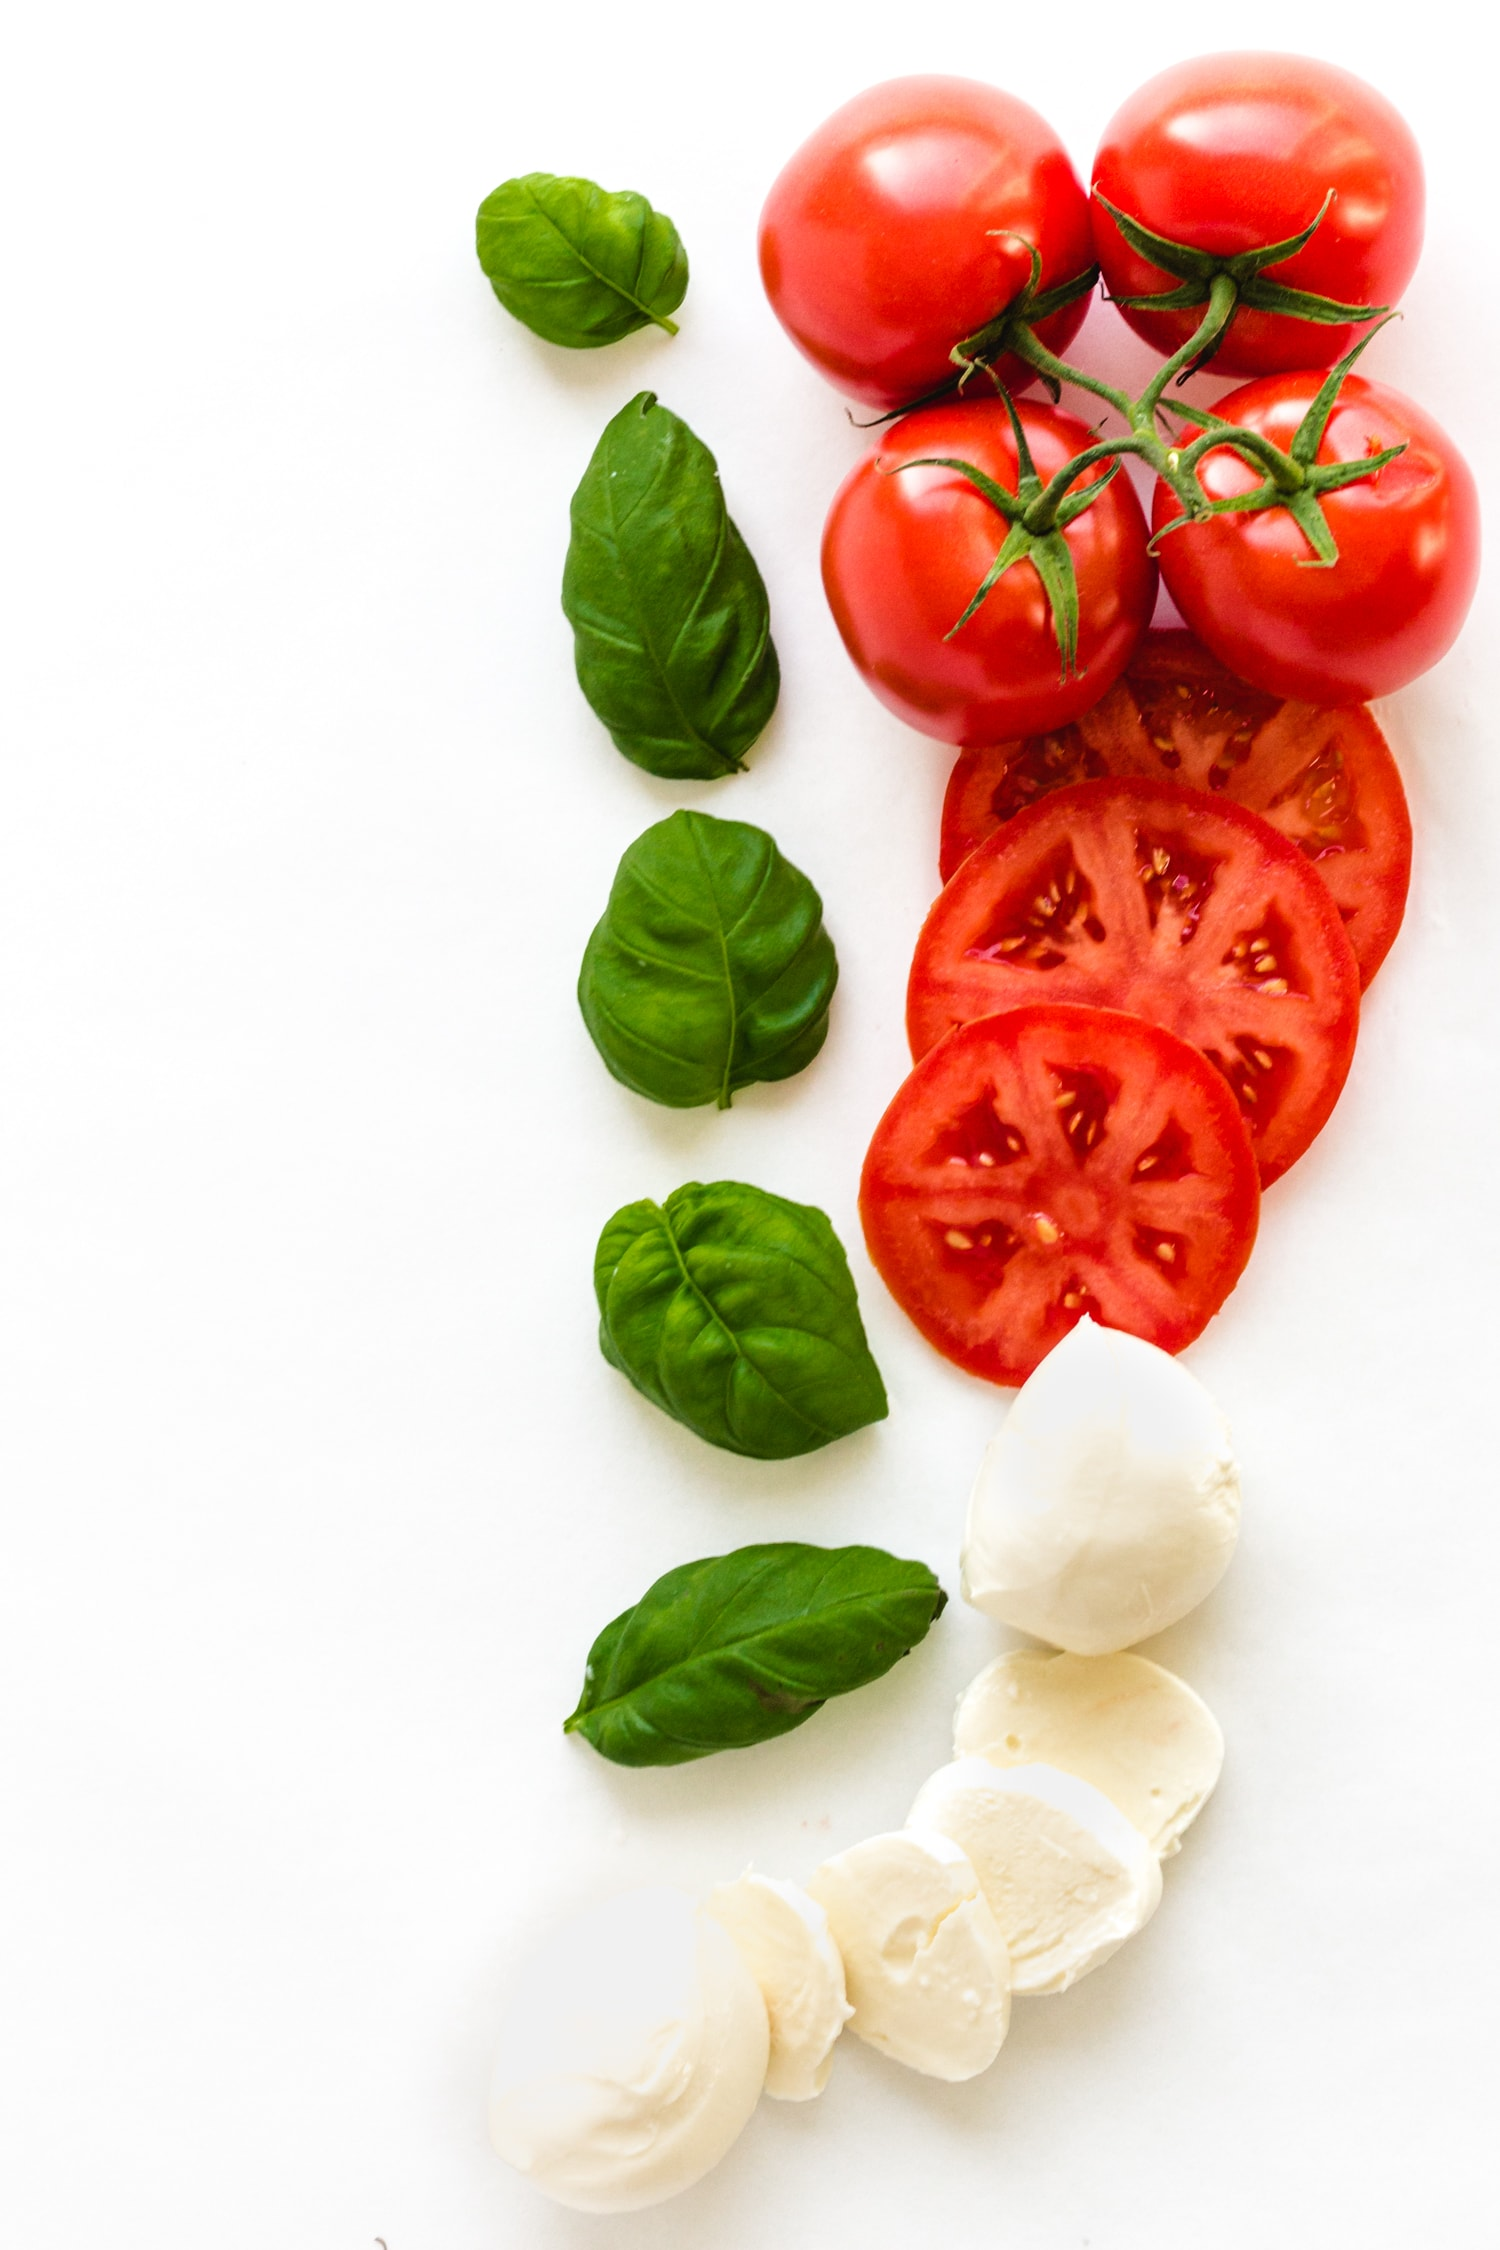 Picture of tomatoes, fresh basil leaves and bocconcini on a white background